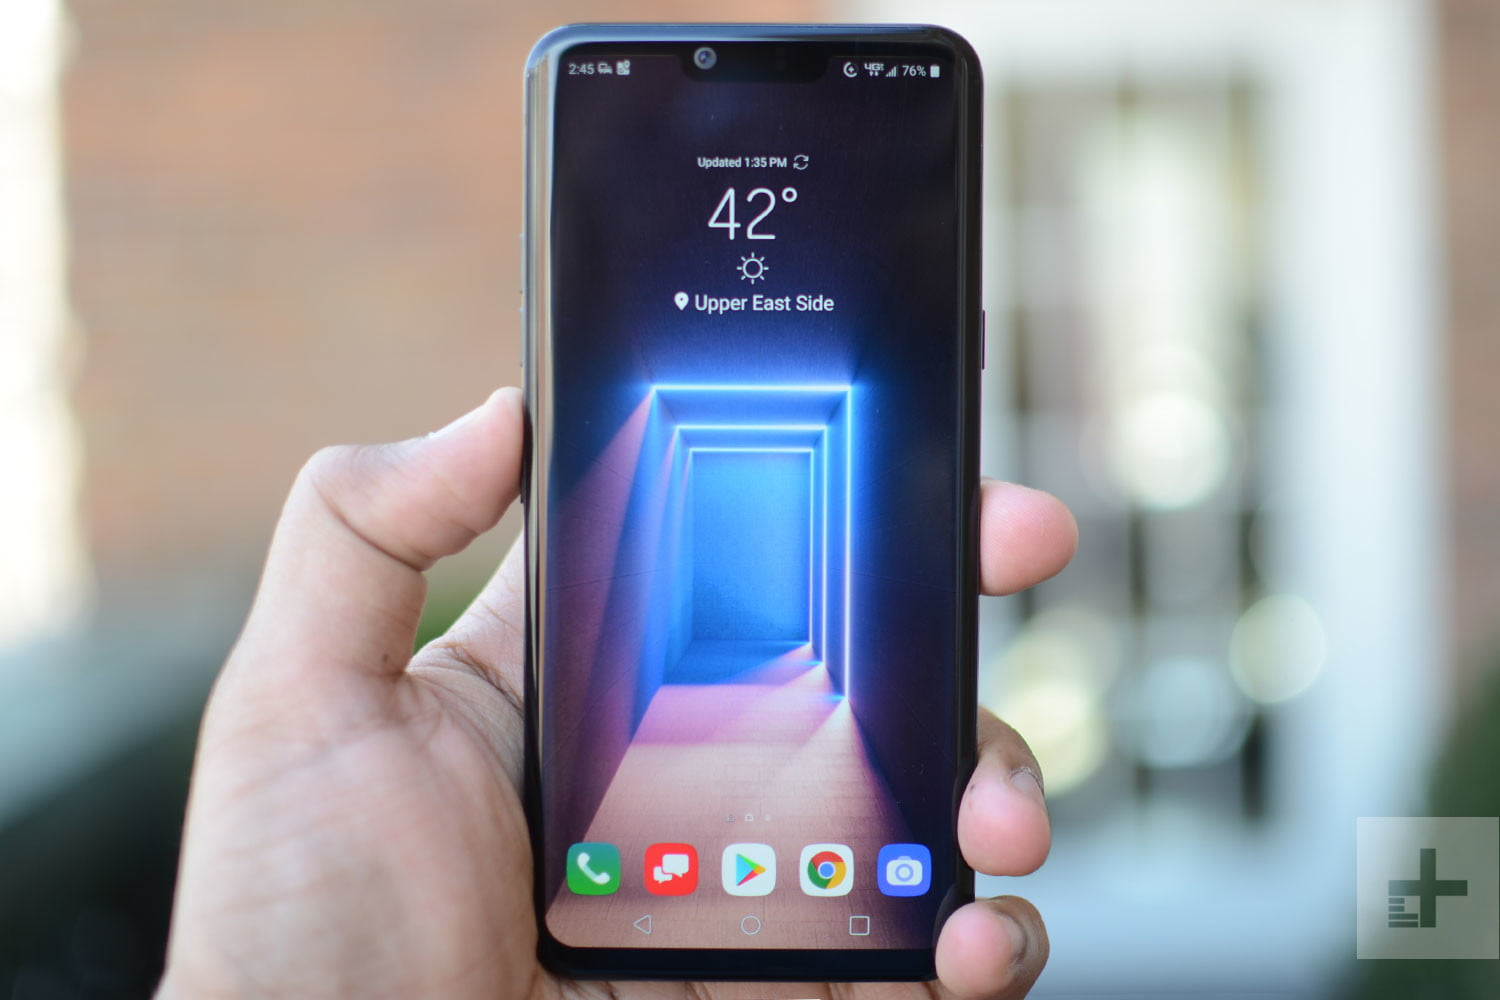 LG G8 ThinQ: News, Specs, Price, Availability And More